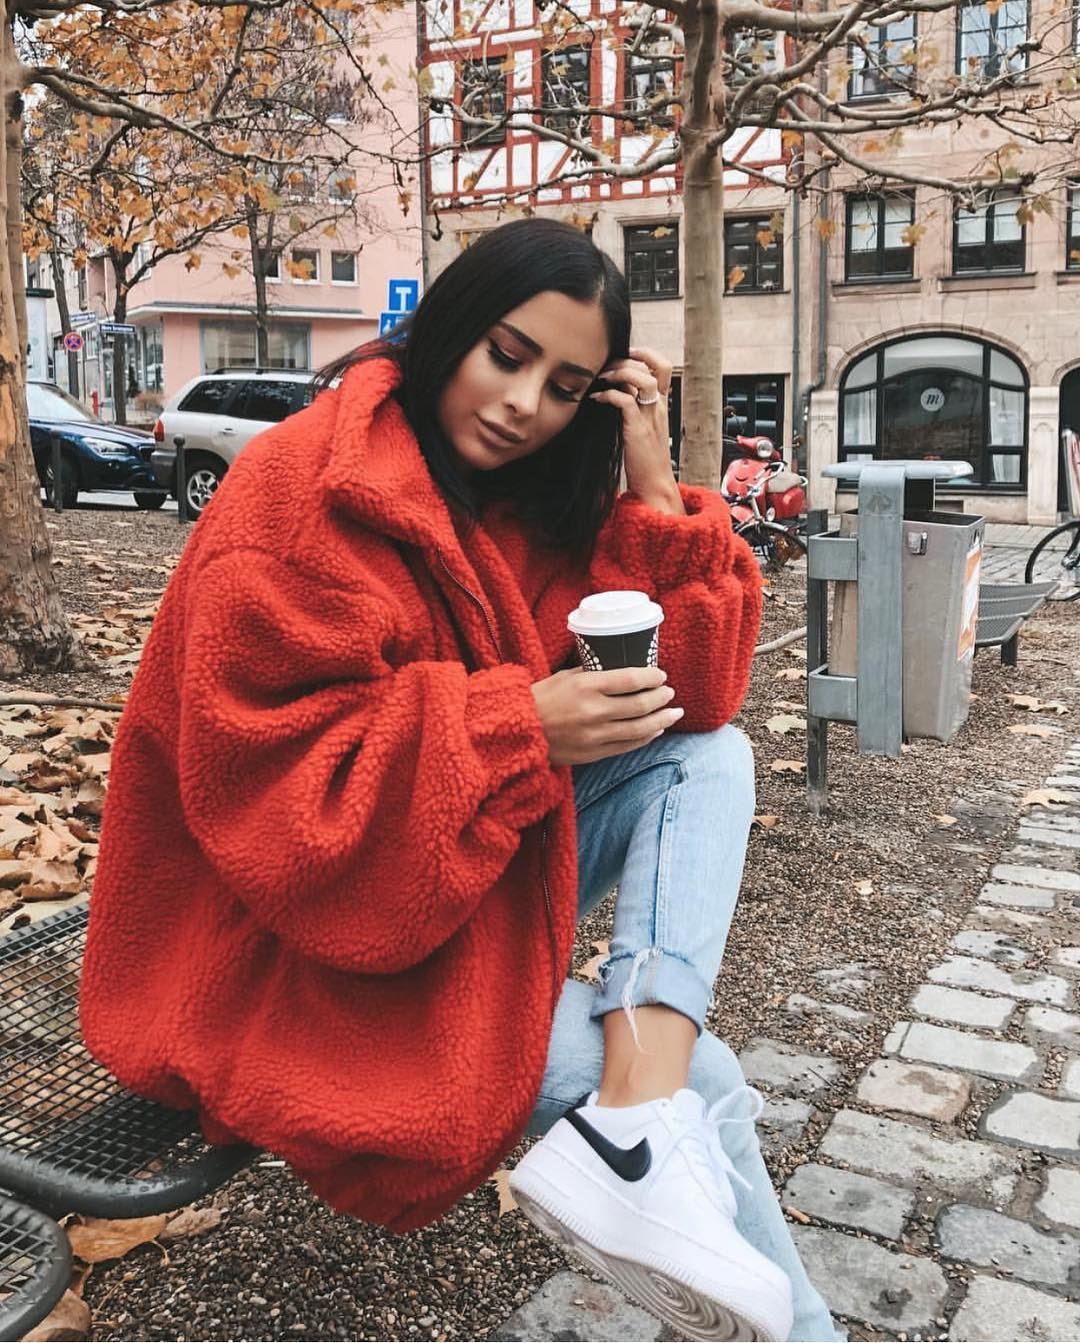 Oversized Red Teddy Bear Coat And Cuffed Blue Jeans With White Sneakers For Fall 2020